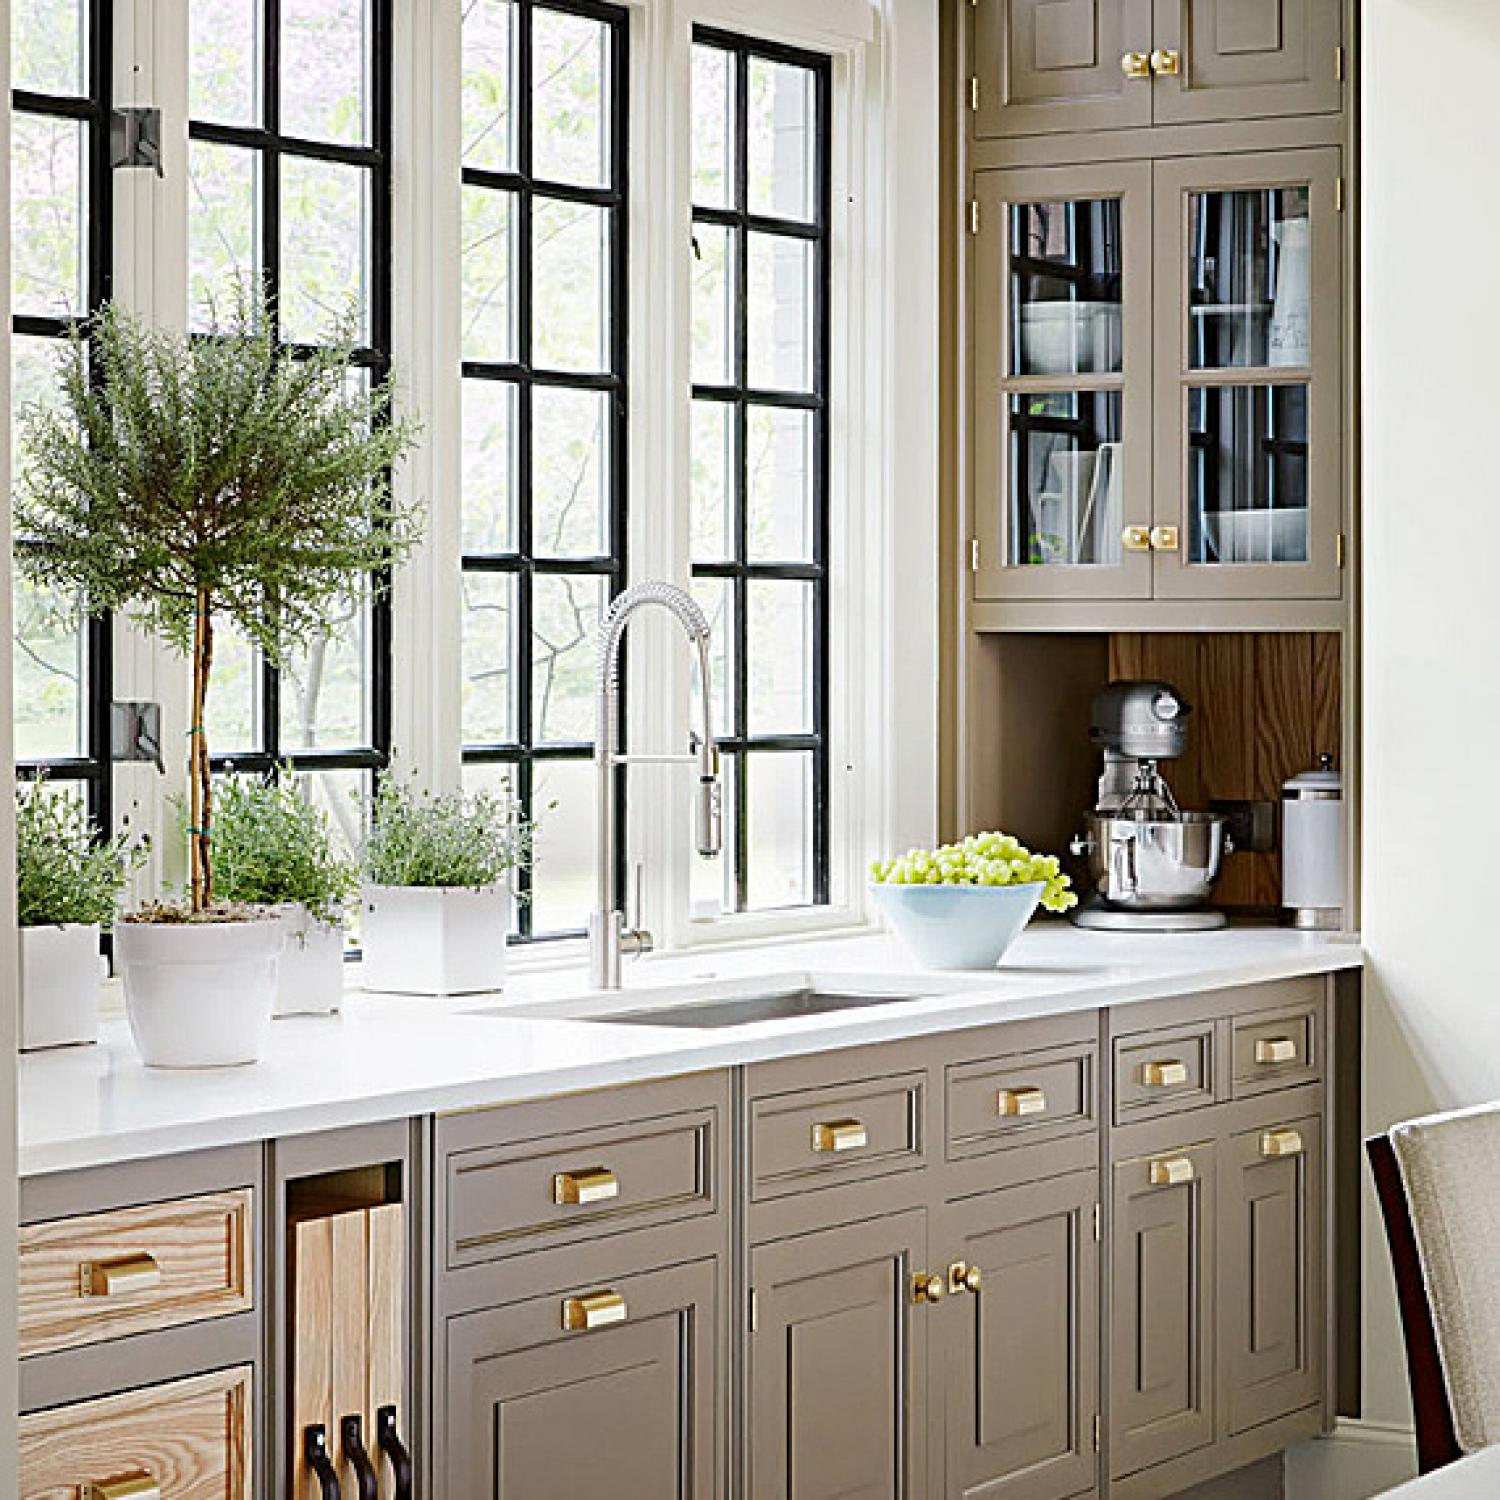 2018 Latest Home Kitchen Cabinet: Showhouse Kitchen Designed By Christopher Peacock